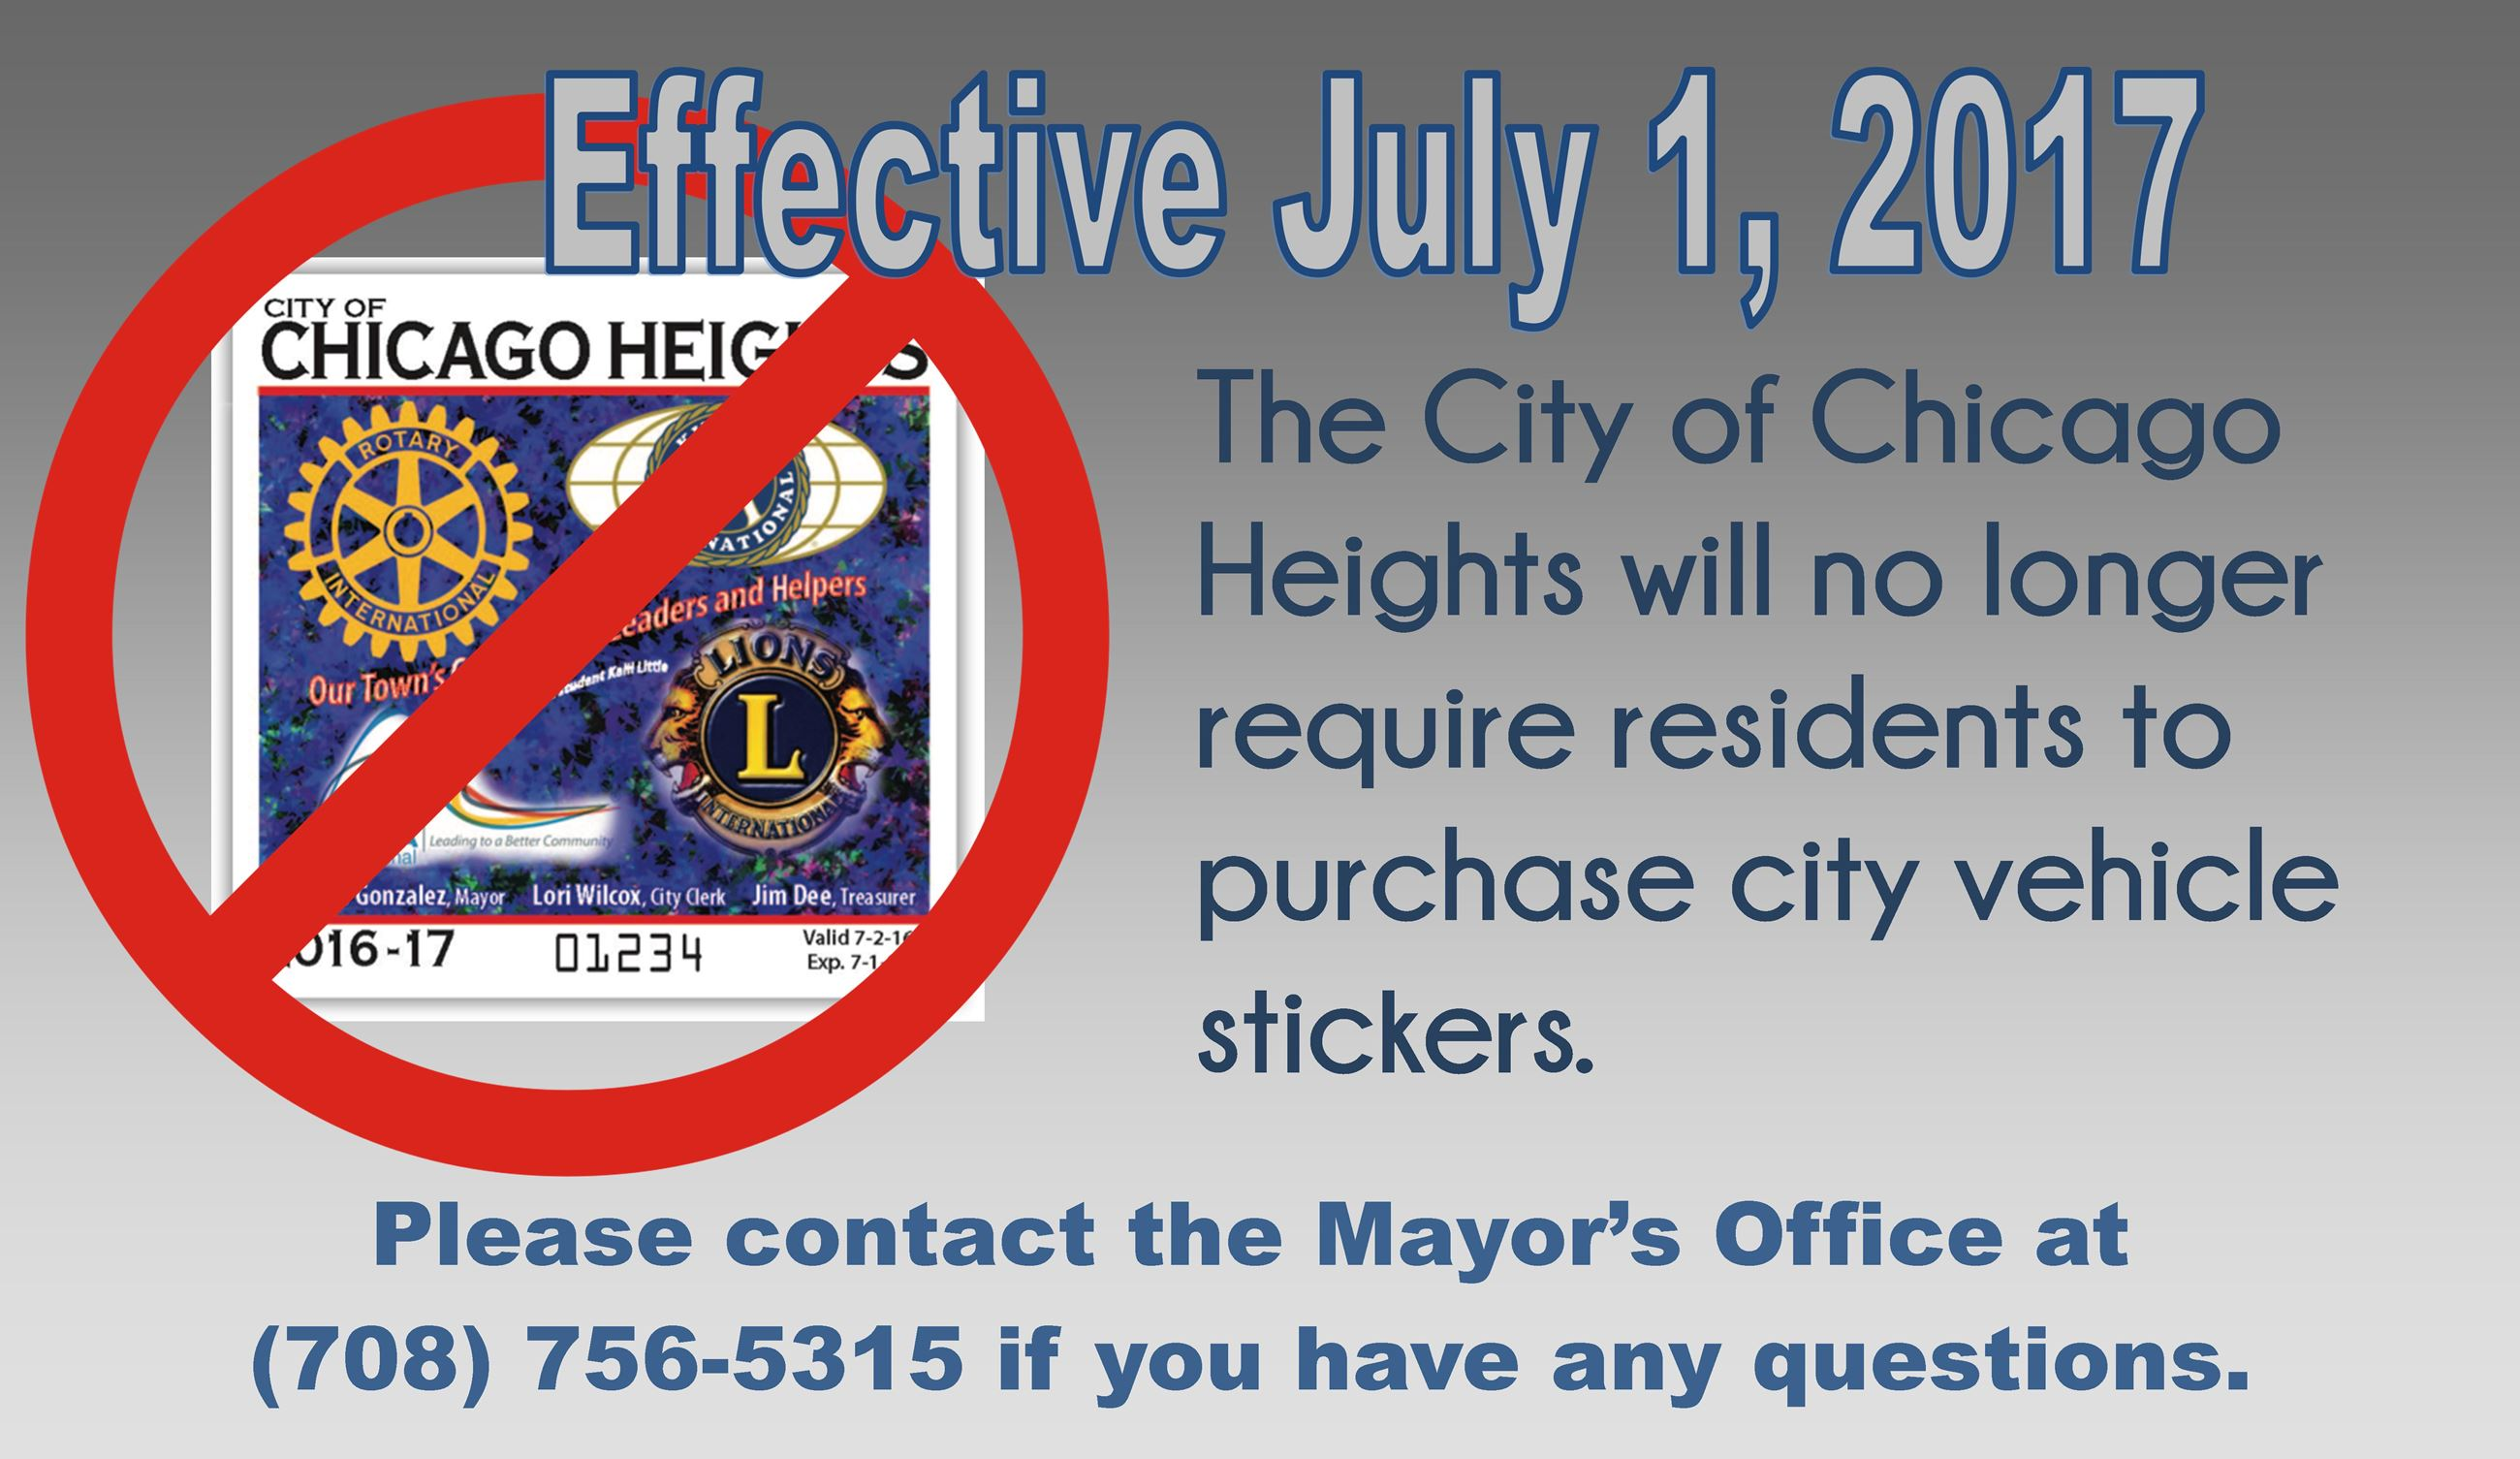 Effective July 1, 2017, vehicle stickers are no longer required. For questions, call Mayor's Offi